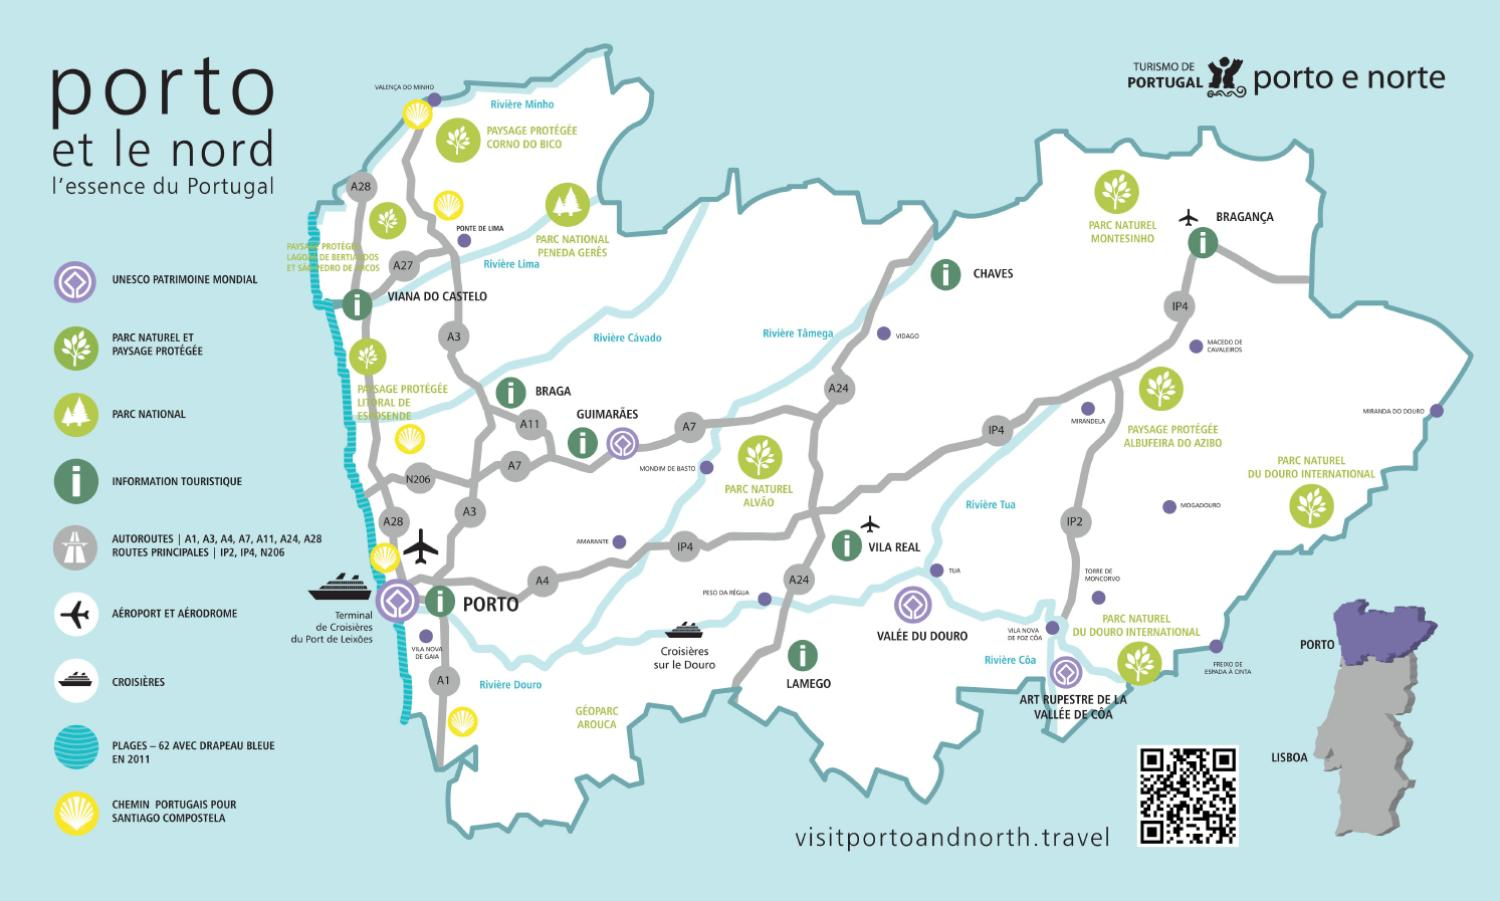 Carte touristique de porto et du nord du portugal by porto convention visitors bureau issuu - Office de tourisme de porto portugal ...